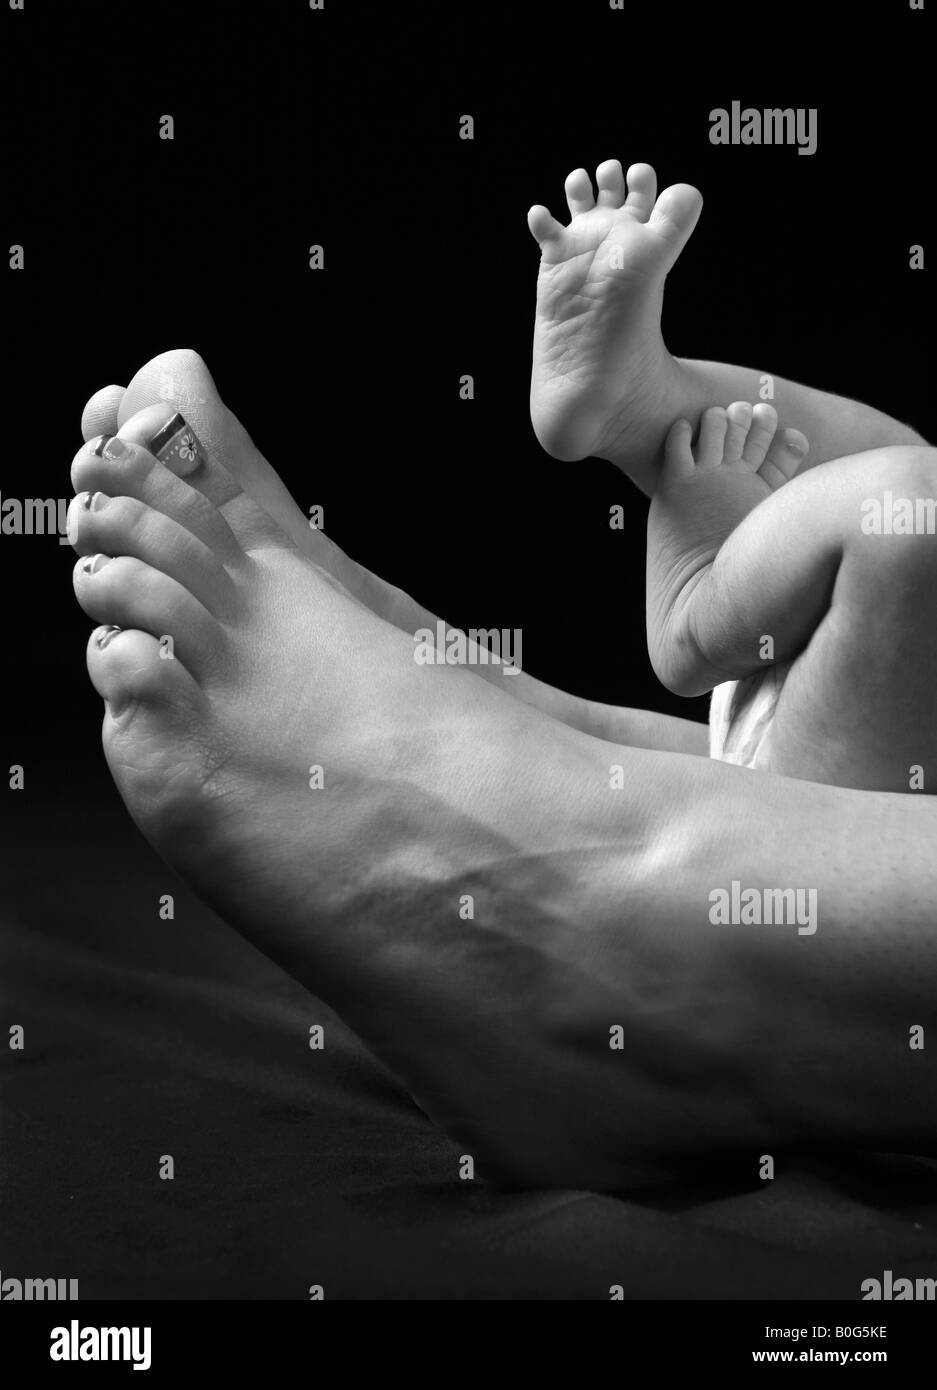 newborn feet together with mothers - Stock Image